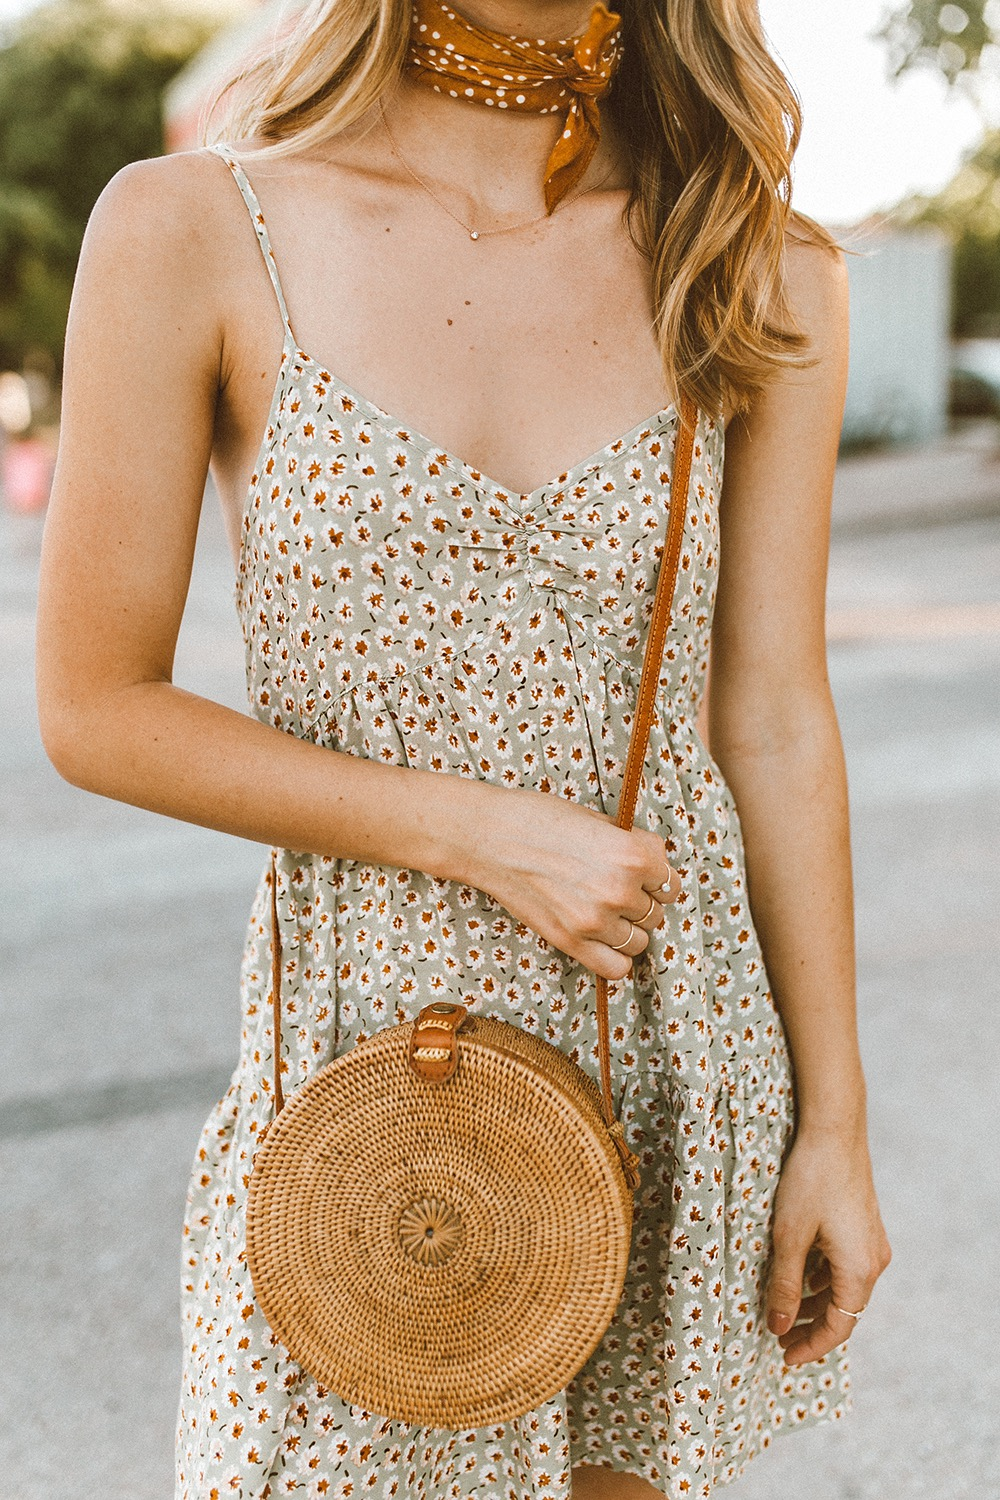 livvyland-blog-olivia-watson-south-congress-i-love-you-so-much-mural-urban-outfitters-harper-babydoll-floral-tie-back-dress-bandana-neck-4